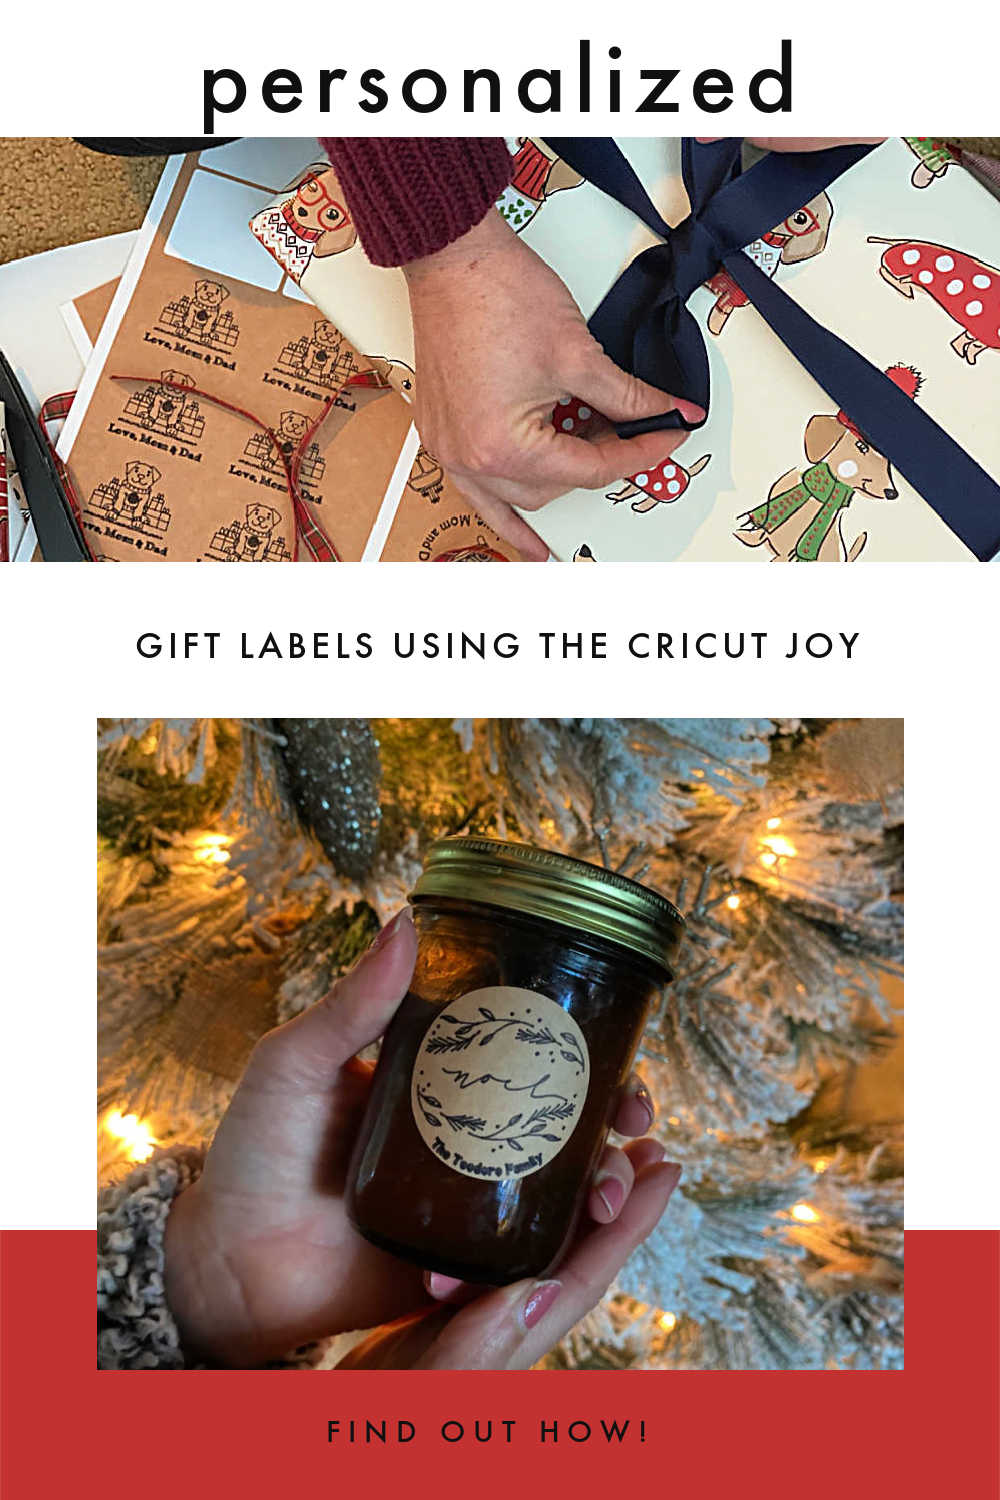 PERSONALIZED GIFT LABELS USING CRICUT JOY